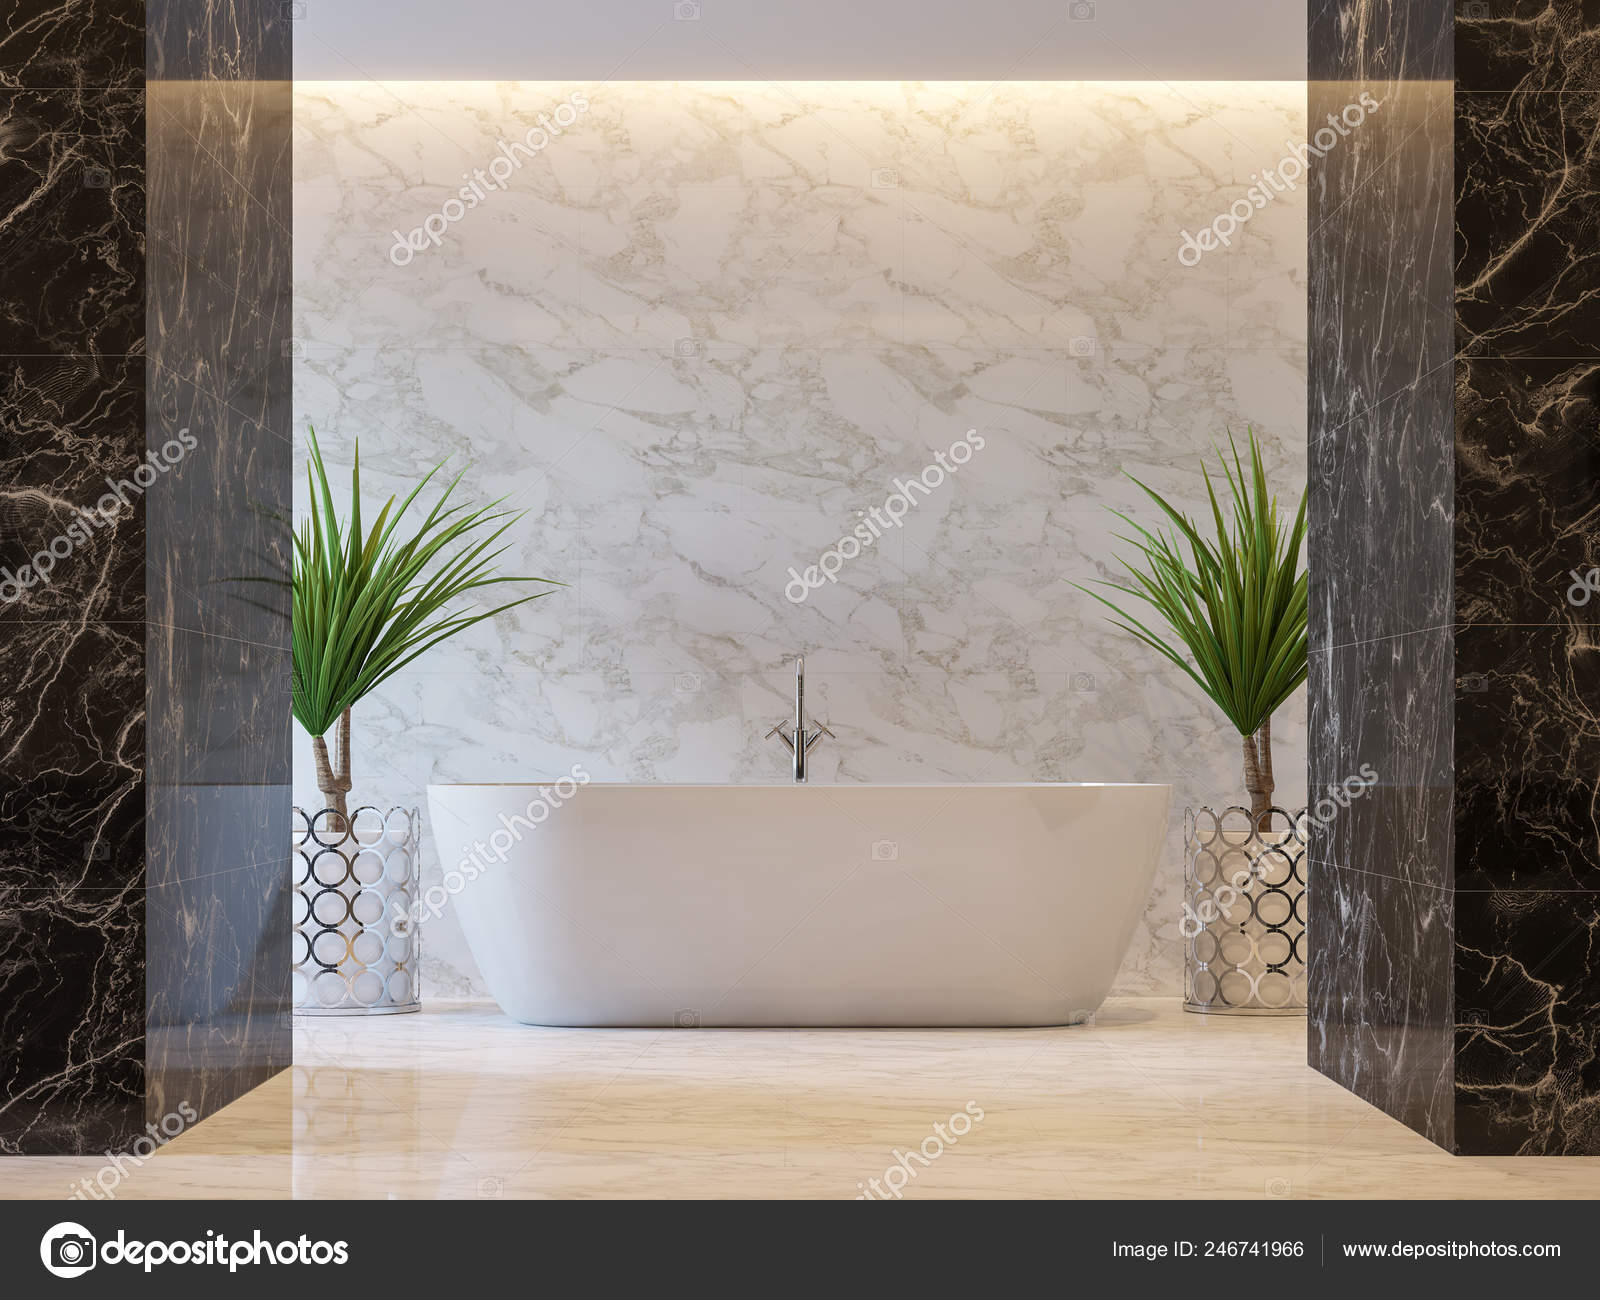 Black And Gold Marble Bathroom Luxury Bathroom Render Black White Marble Tile Wall Floor Decorate Stock Photo C Onzon 246741966